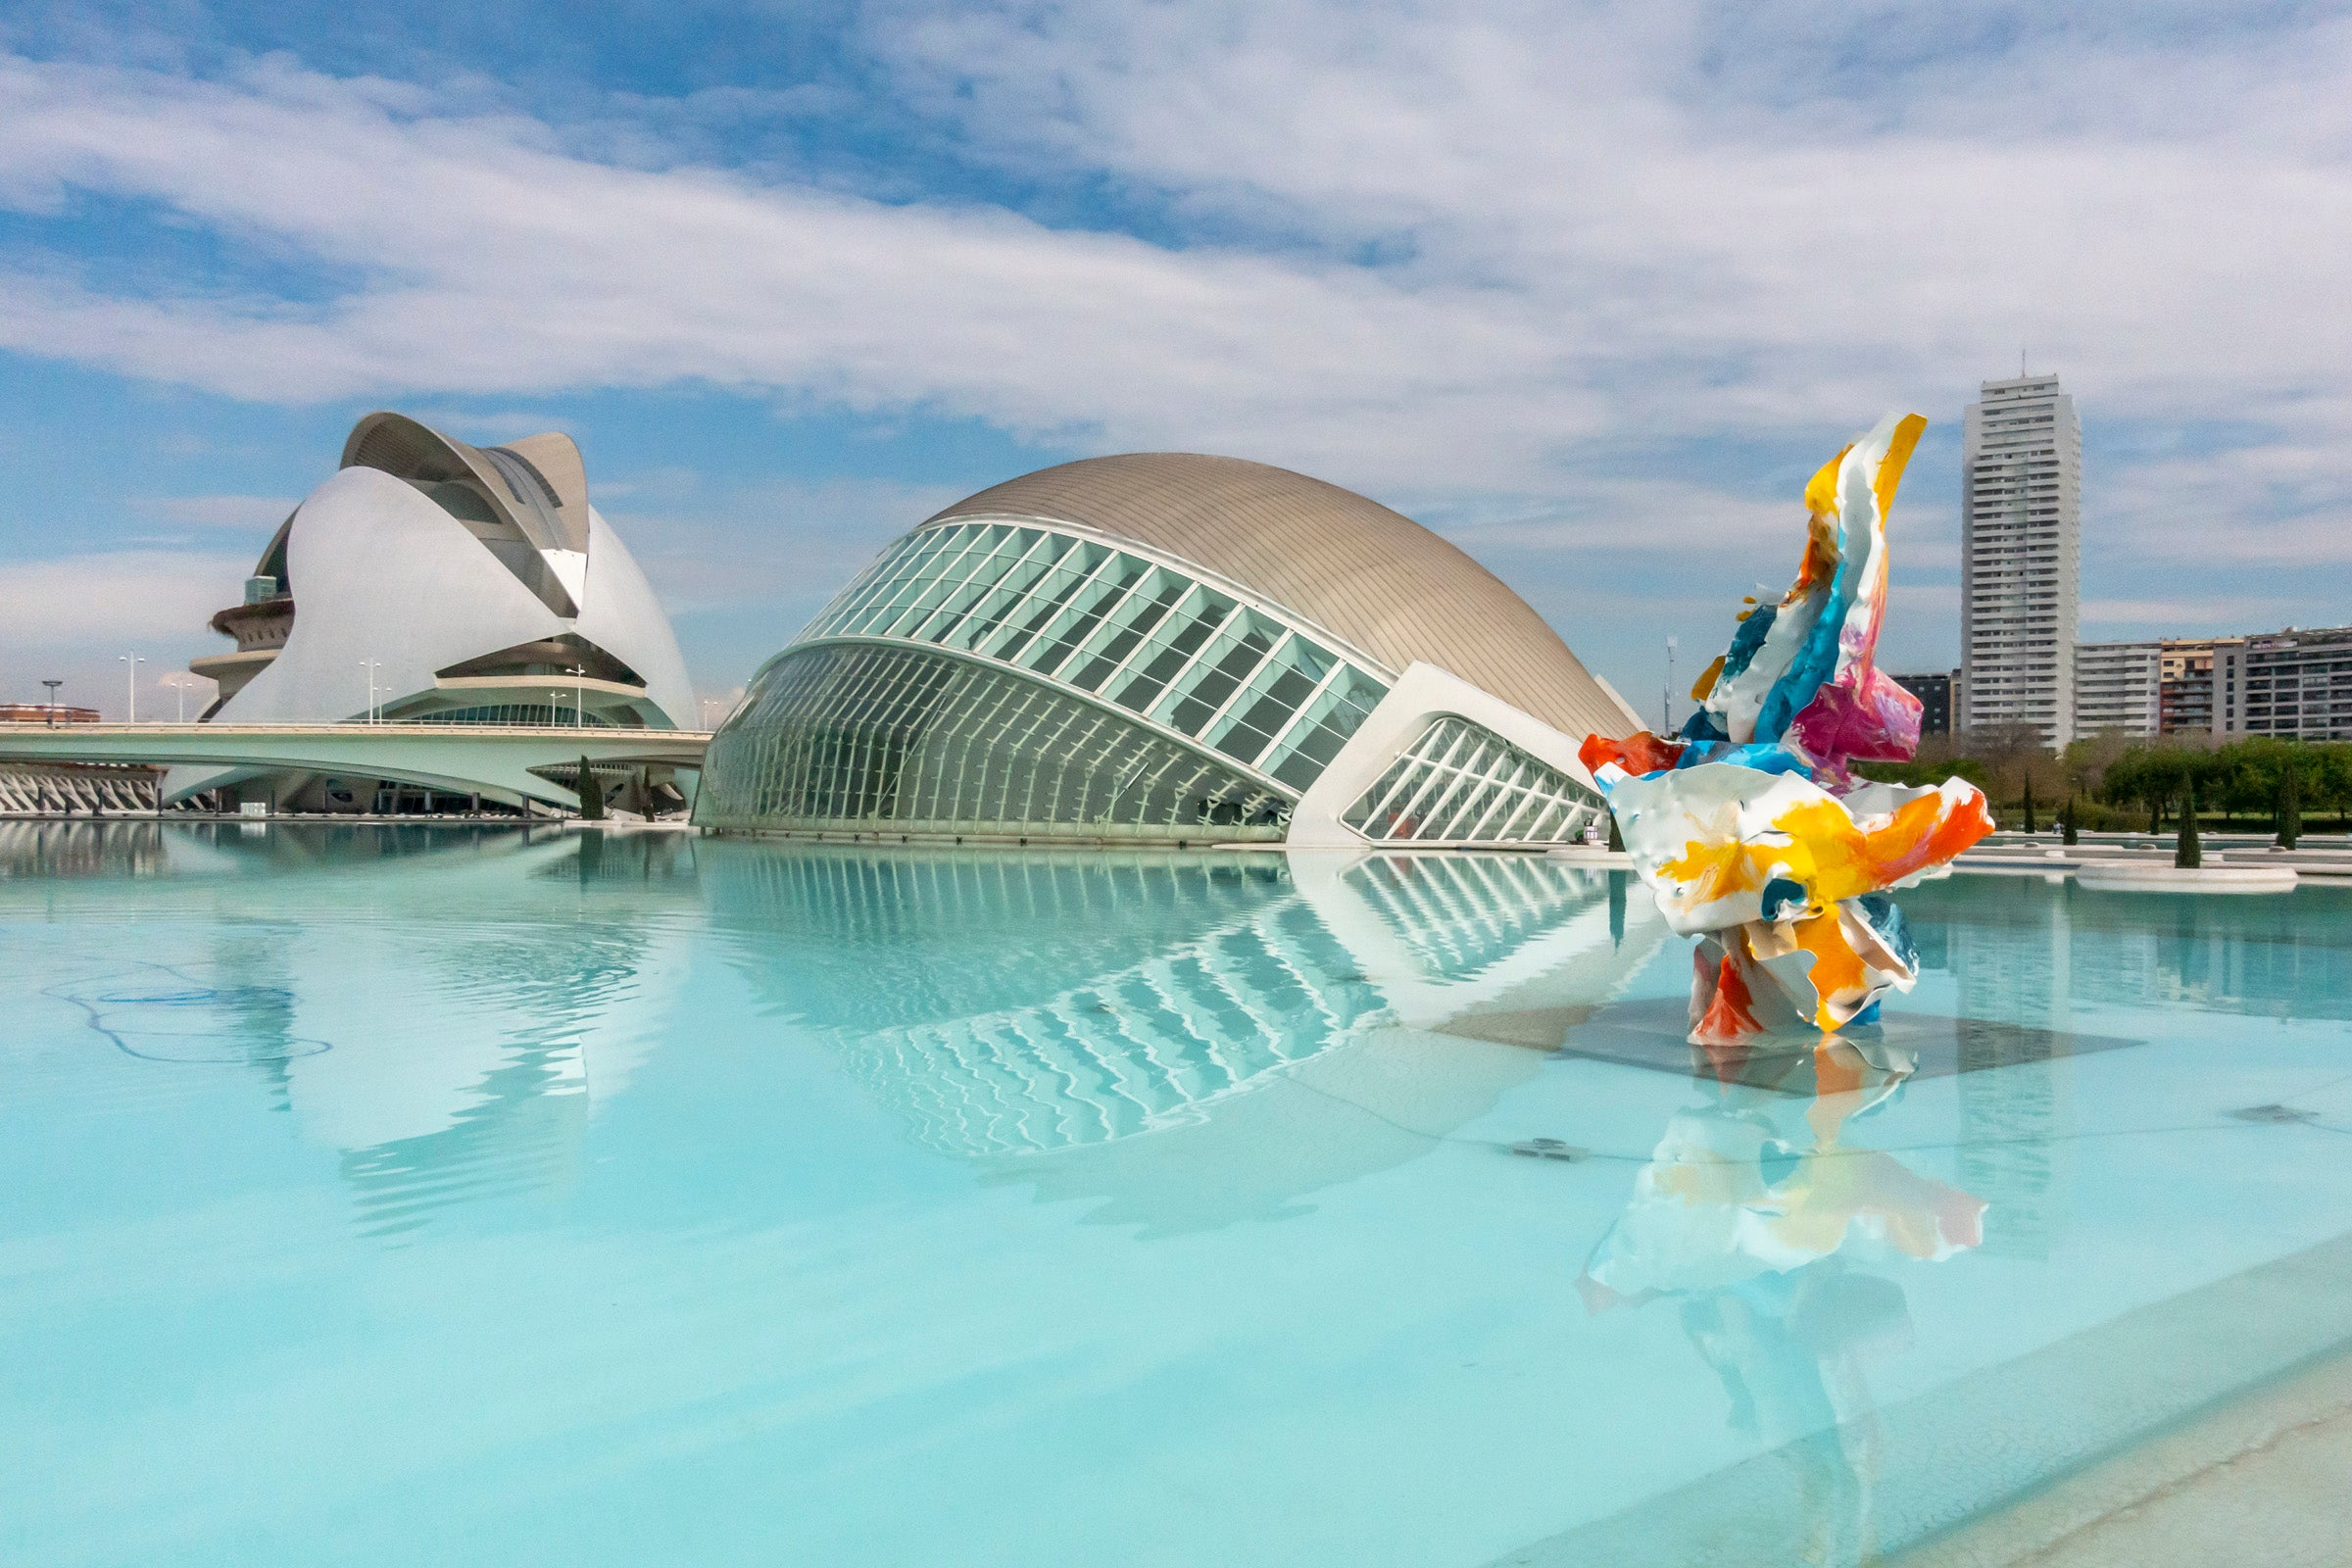 The Hemisferic, Valencia